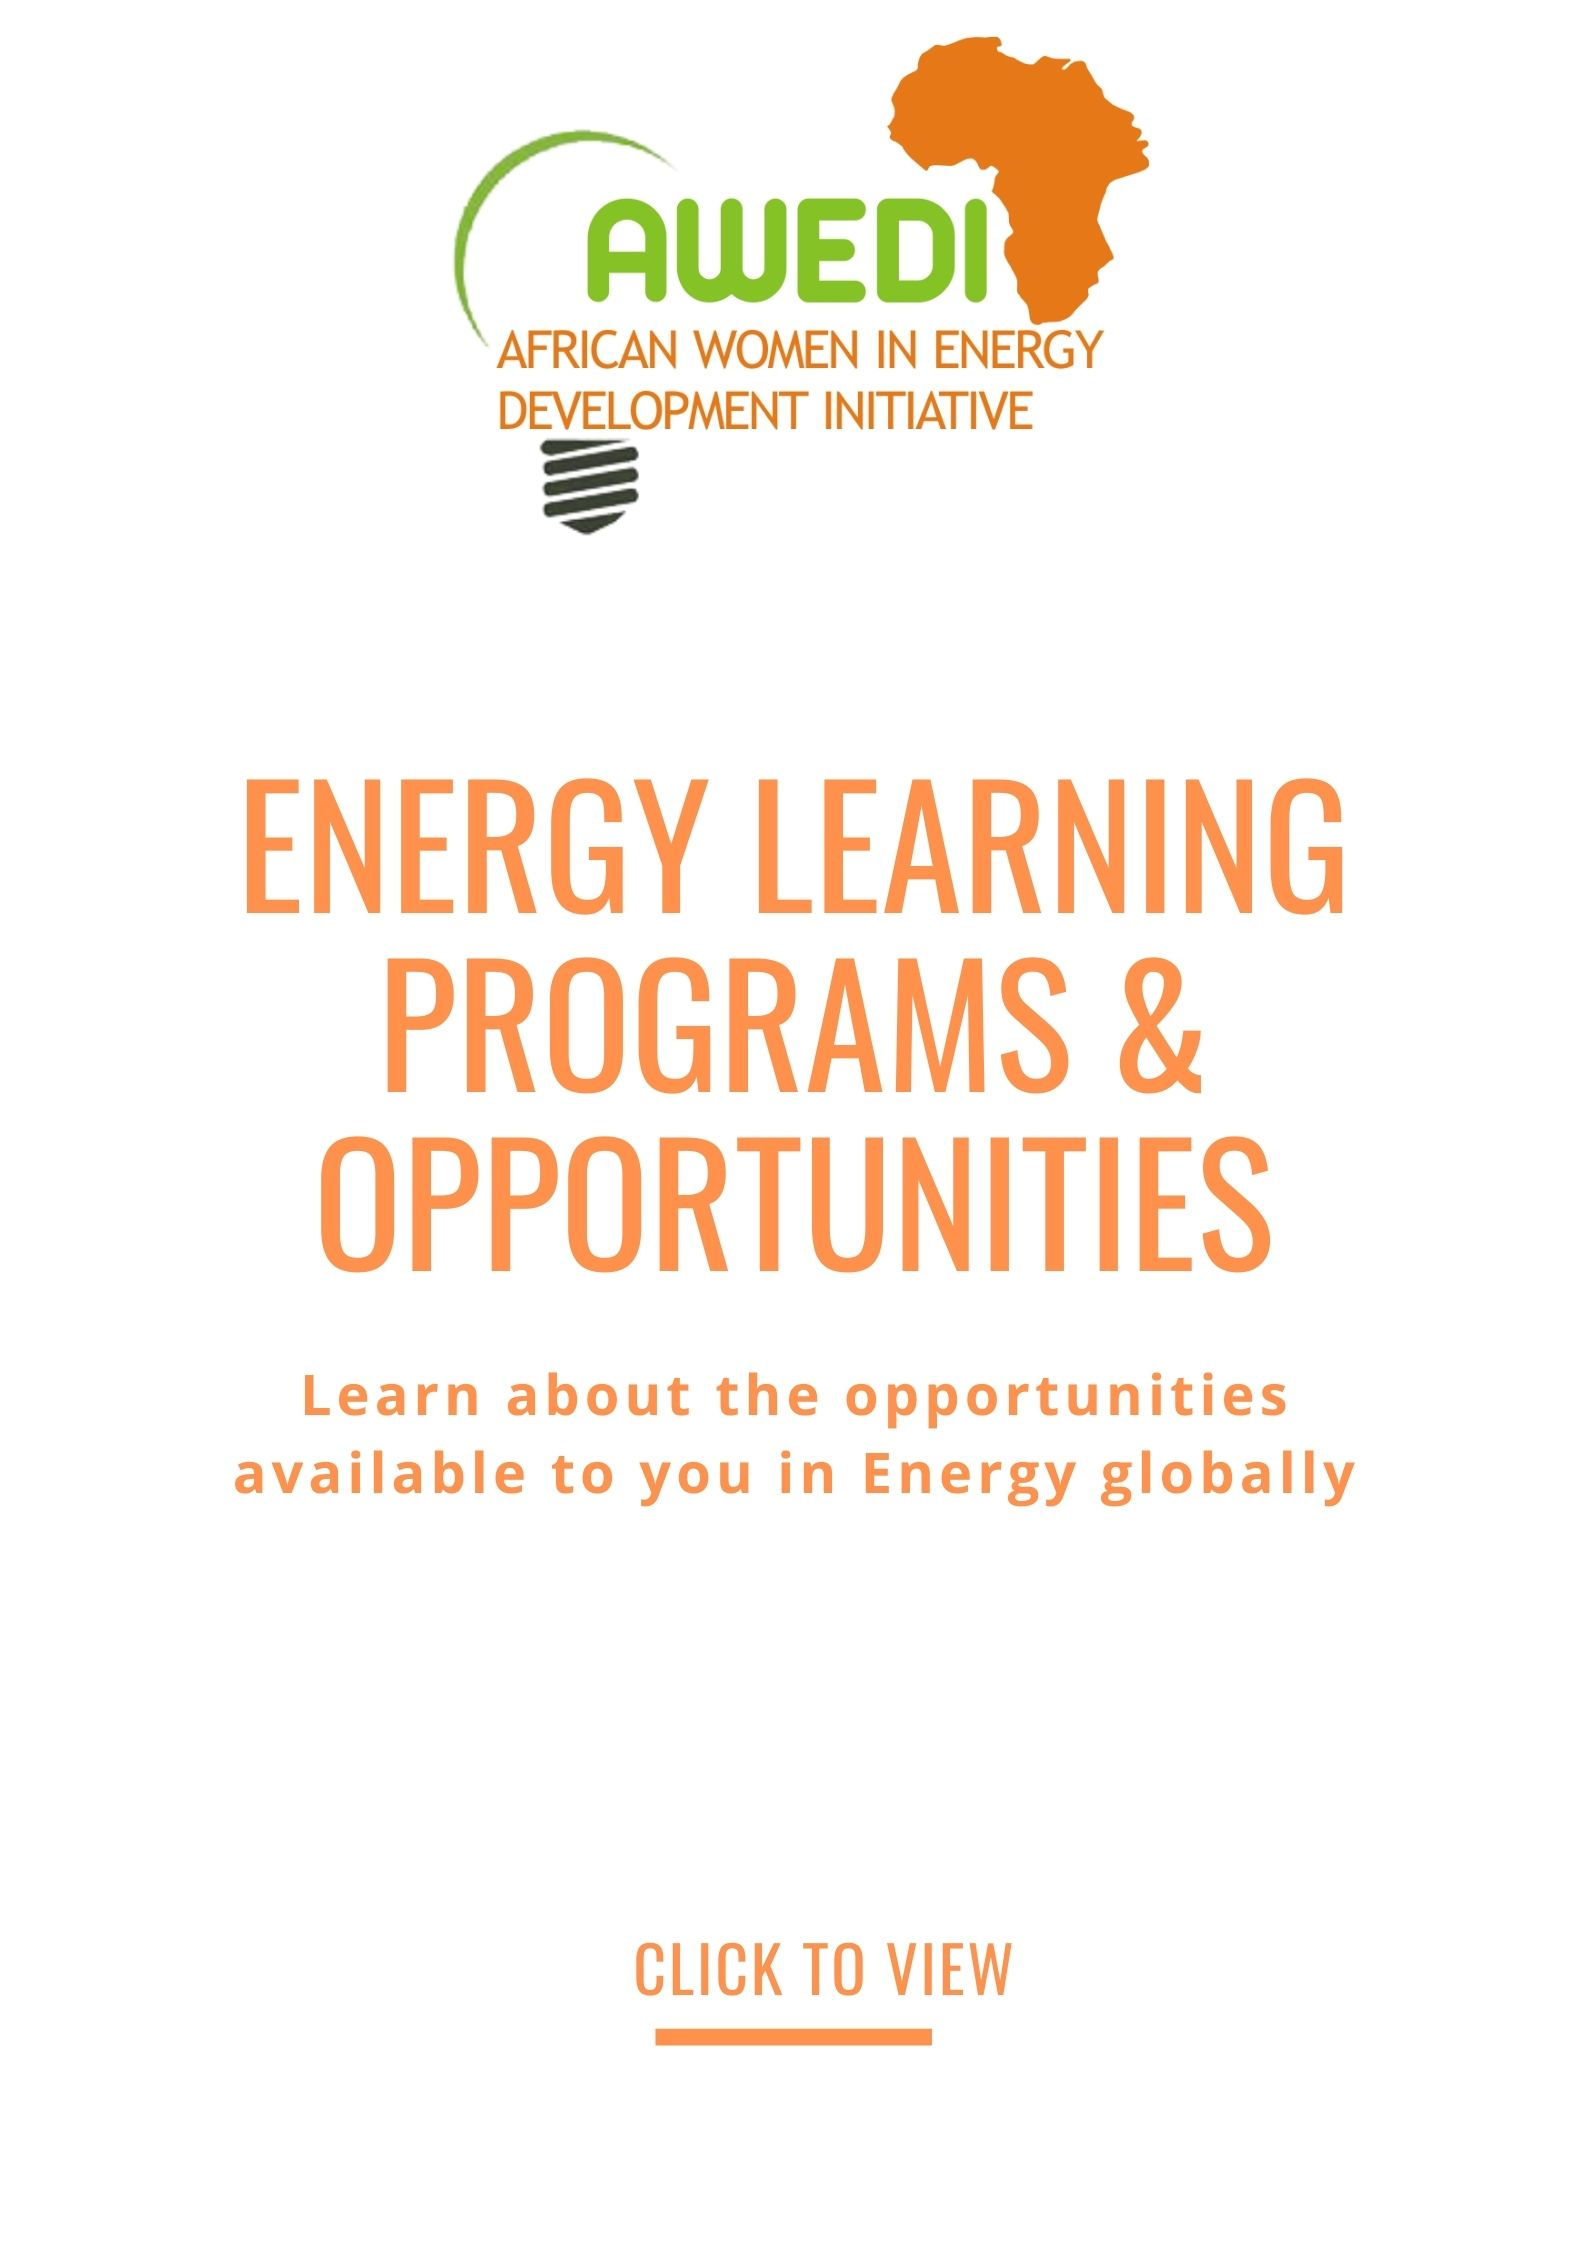 Energy learning programs and opportunities